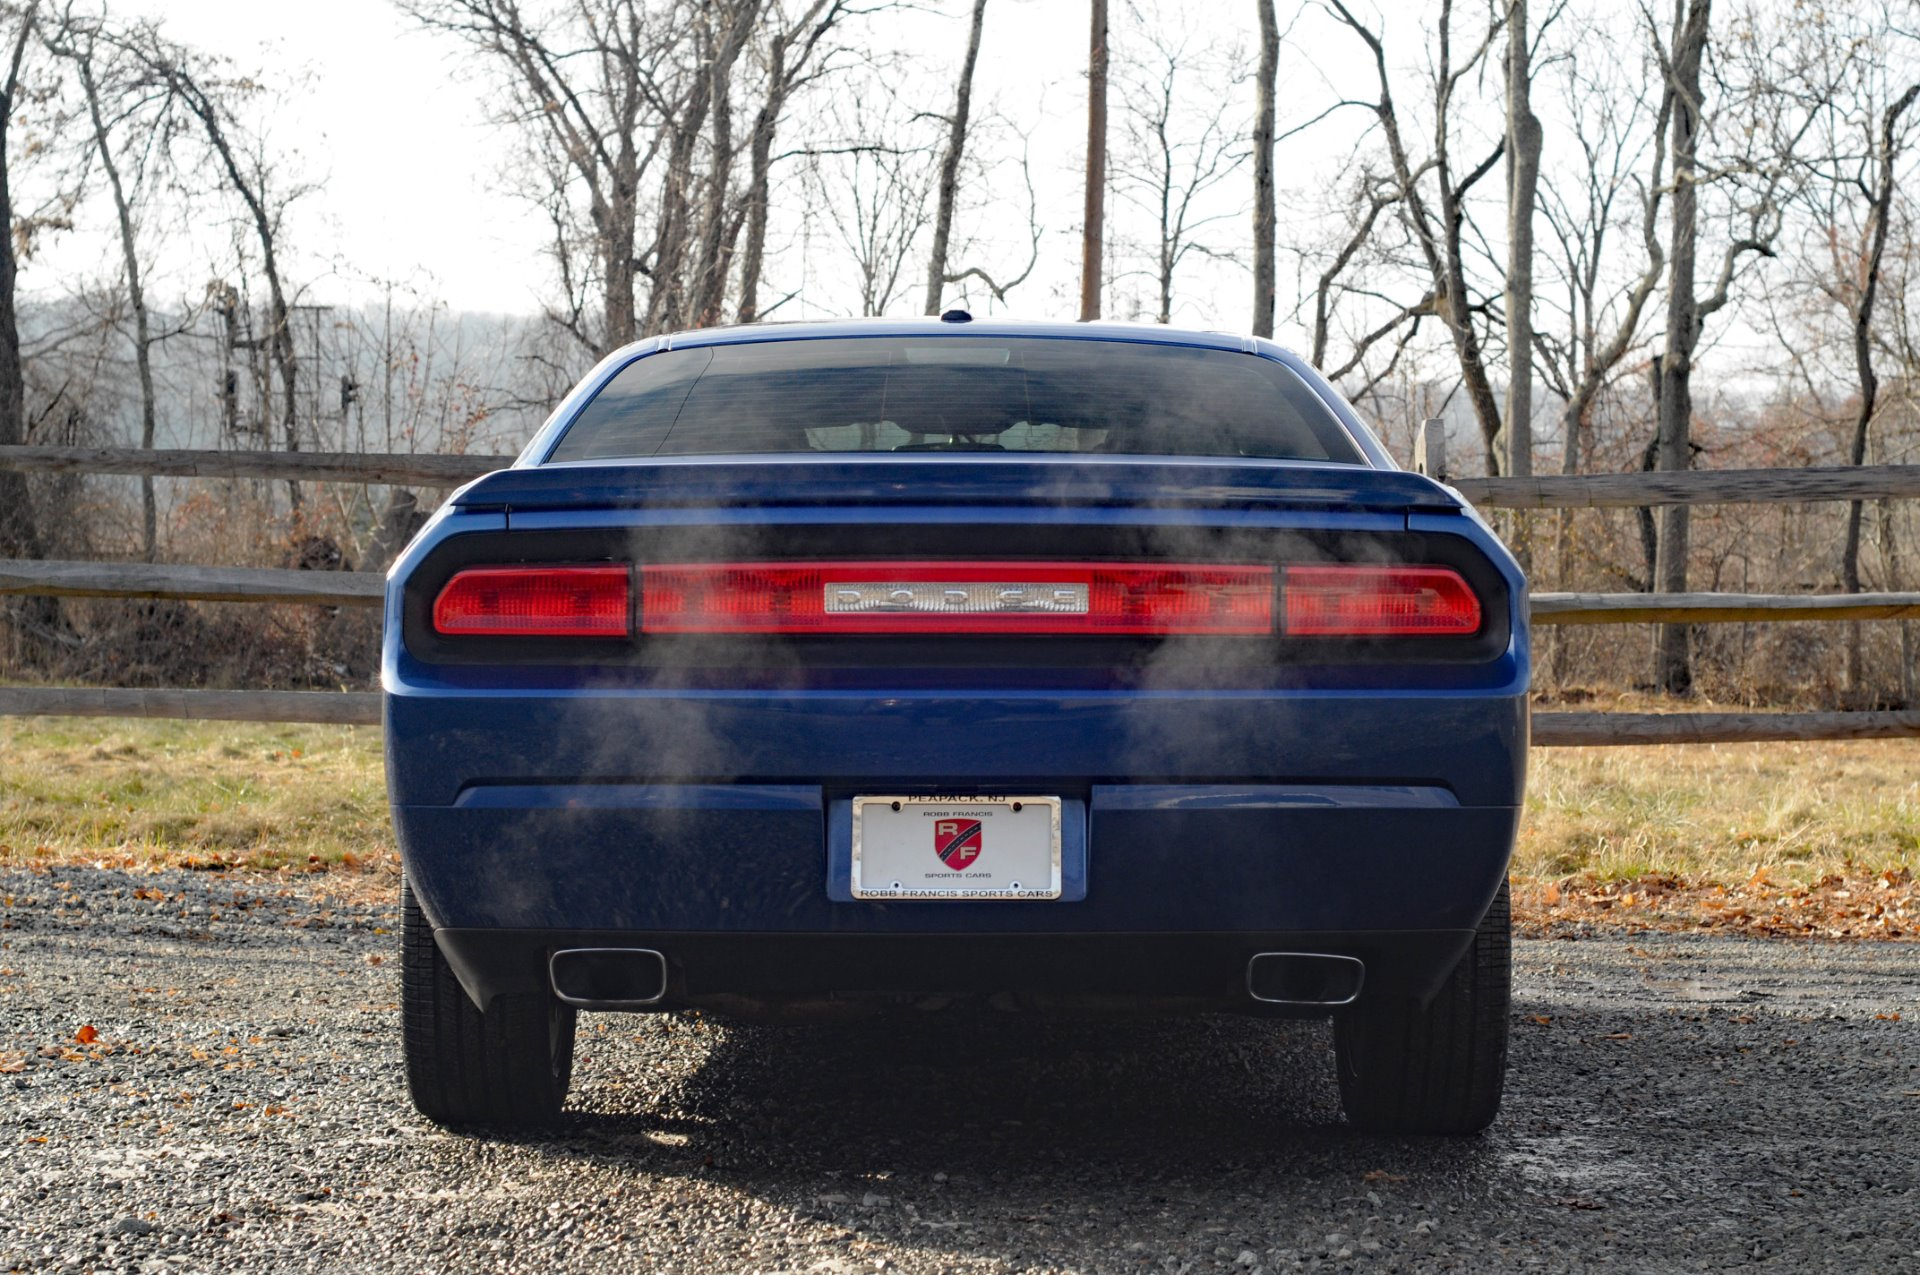 carfinder on lot auctions burn left en st salvage dodge of louis auto online for view in mo certificate challenger title copart sale